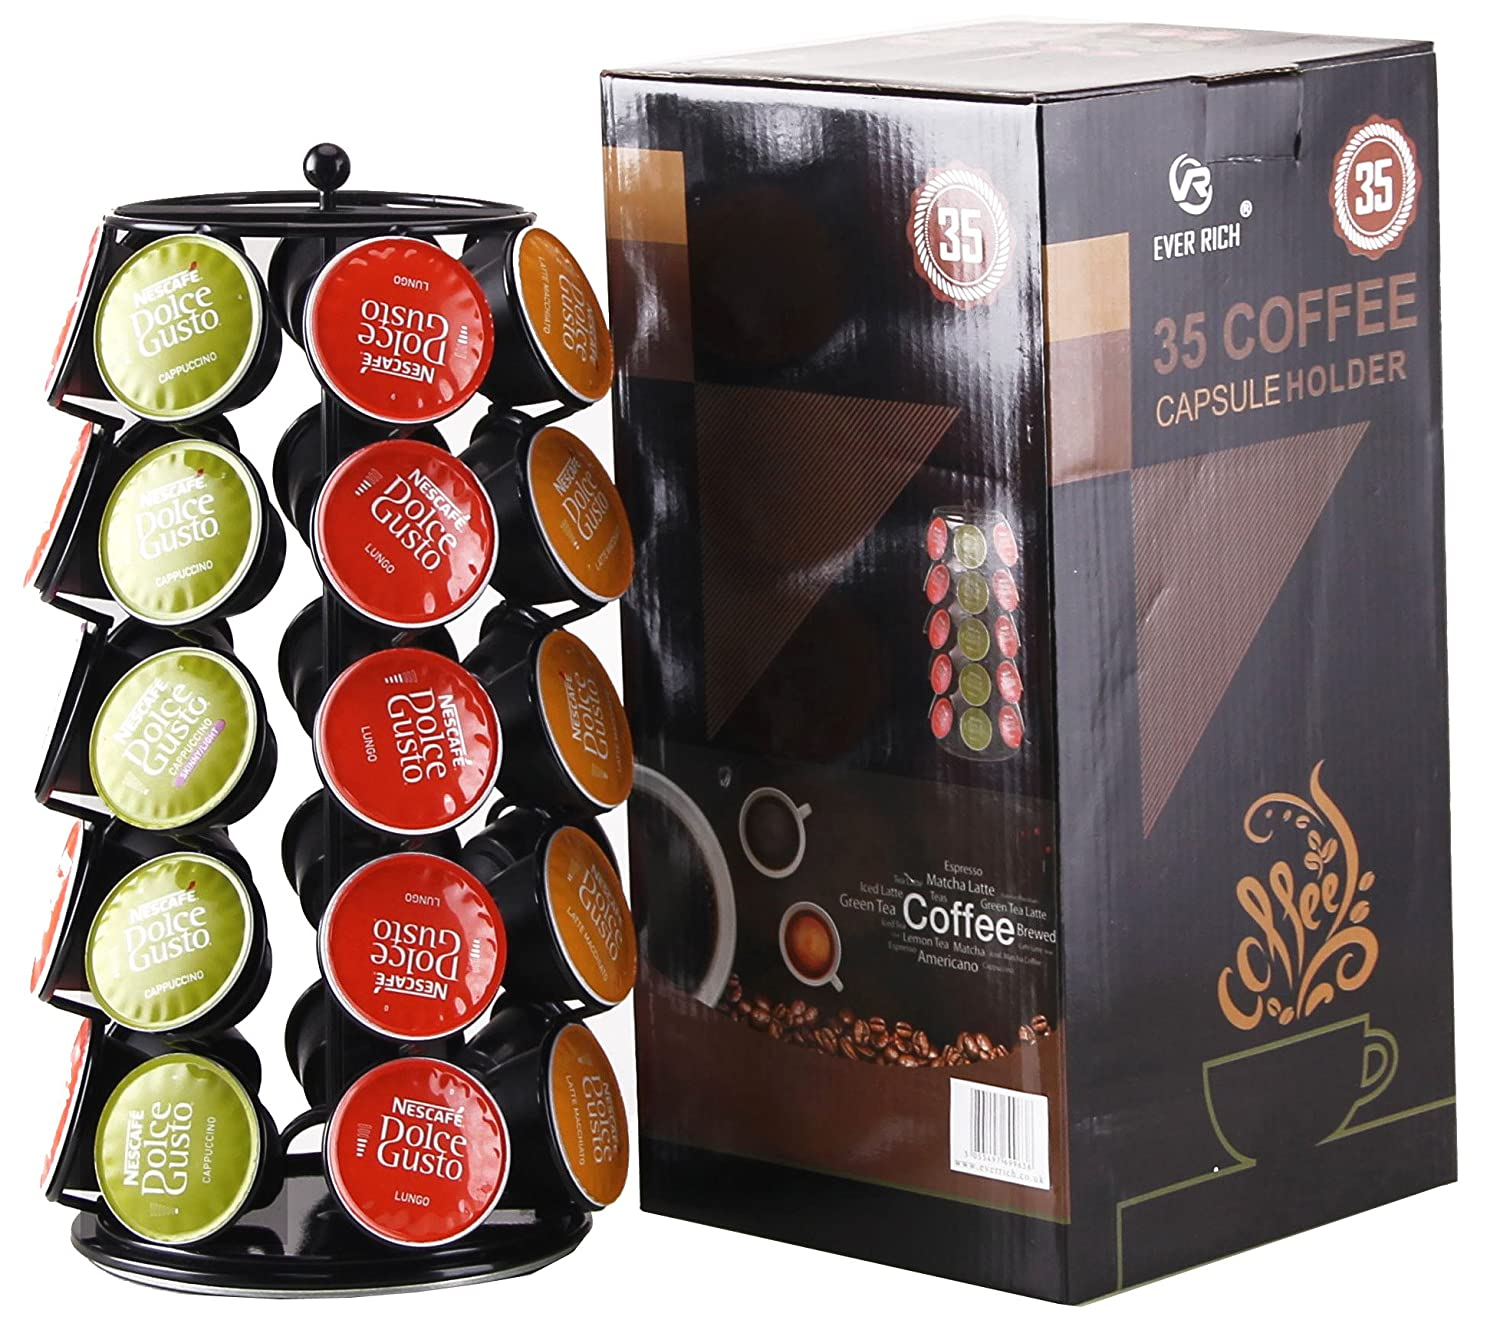 DOLCE GUSTO 24 / 32 COFFEE POD ROTATING HOLDER RACK, CAPSULE STAND,24 EVER RICH